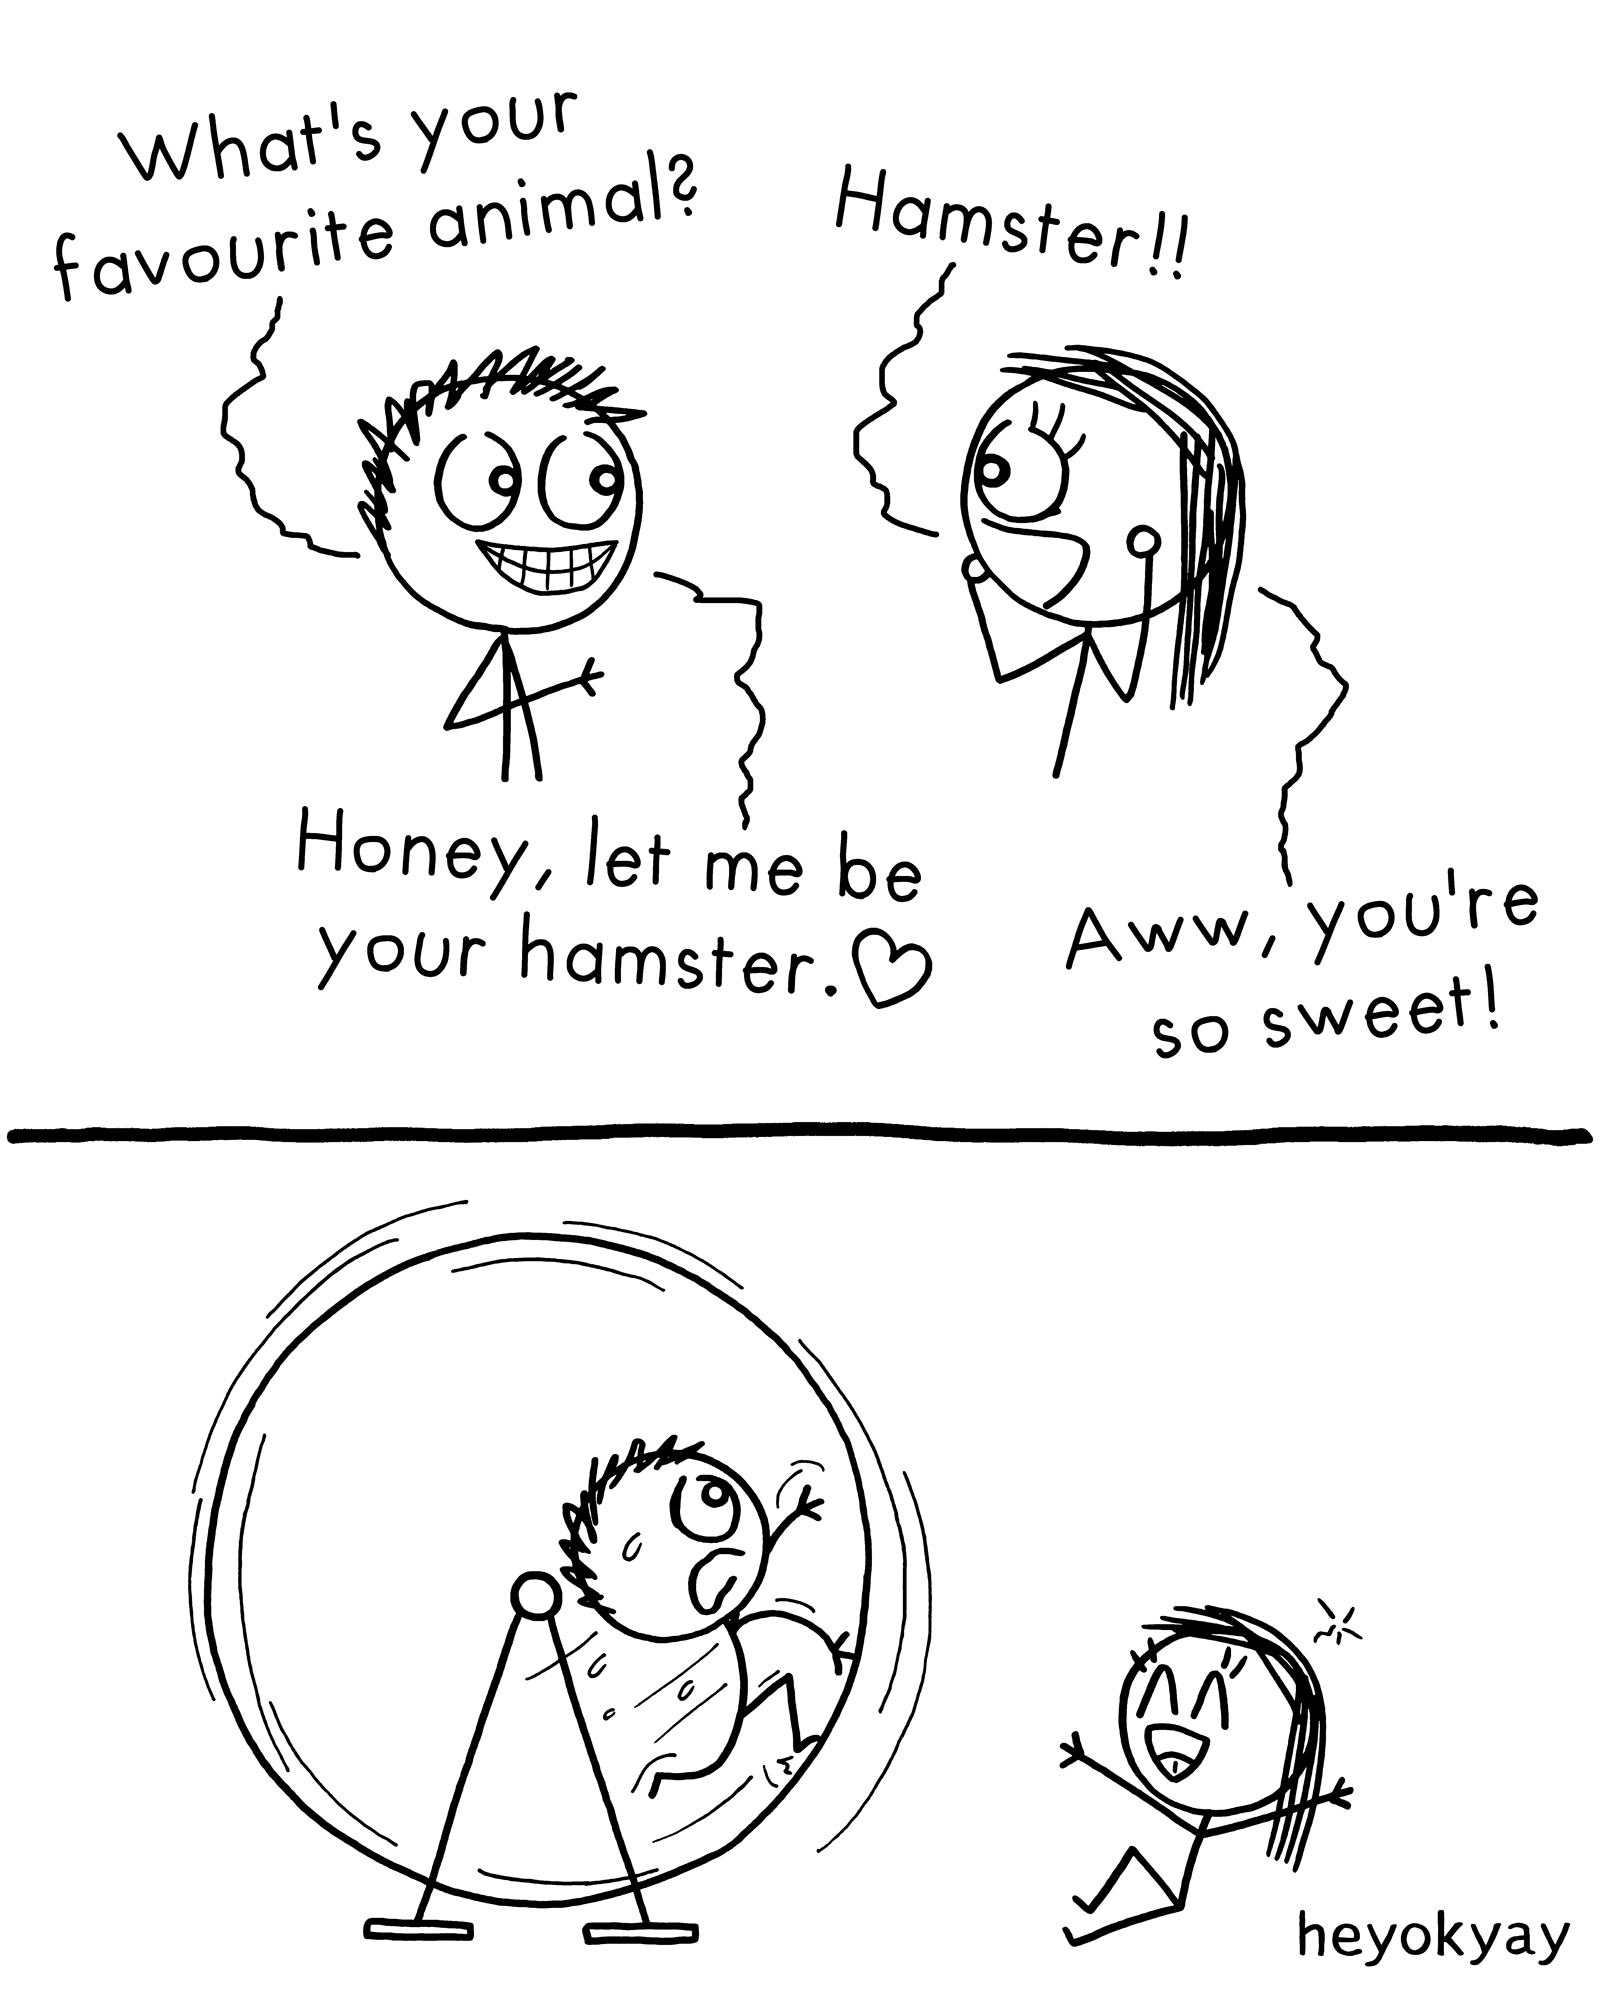 Favourite Animal heyokyay comic